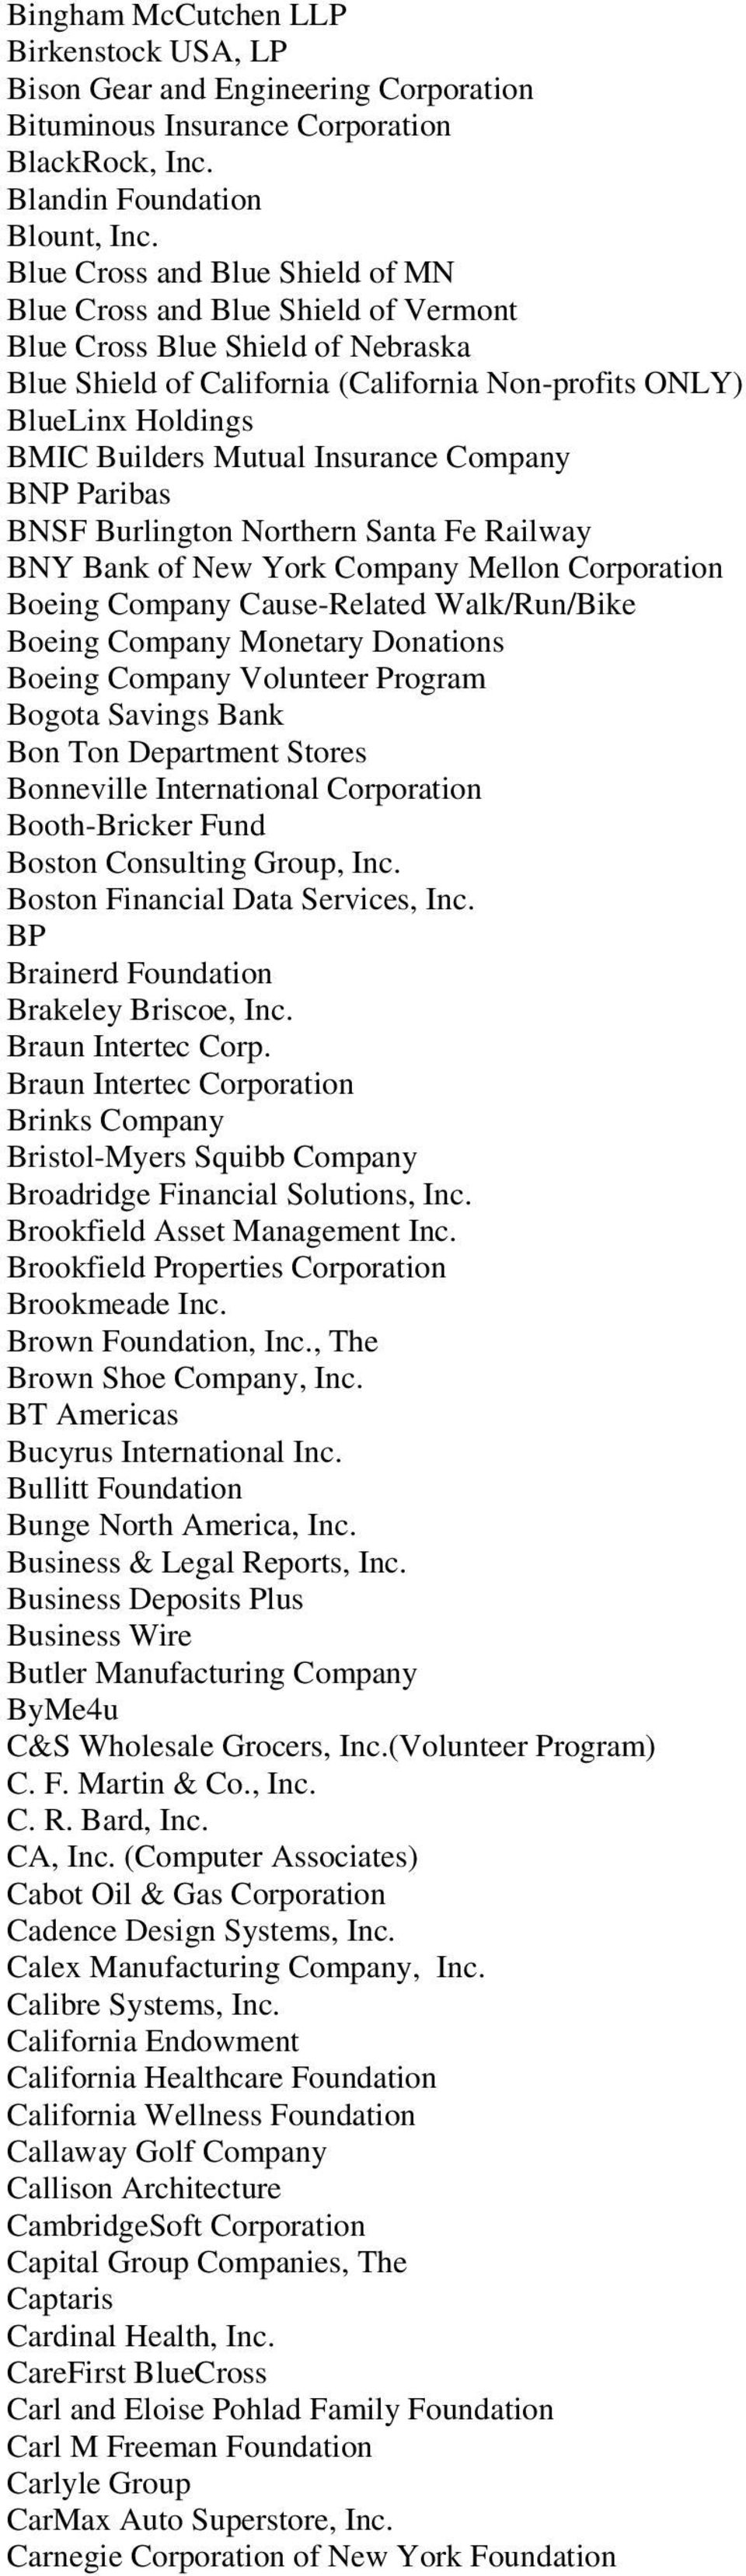 Matching Gifts  To follow is a list of corporations who may